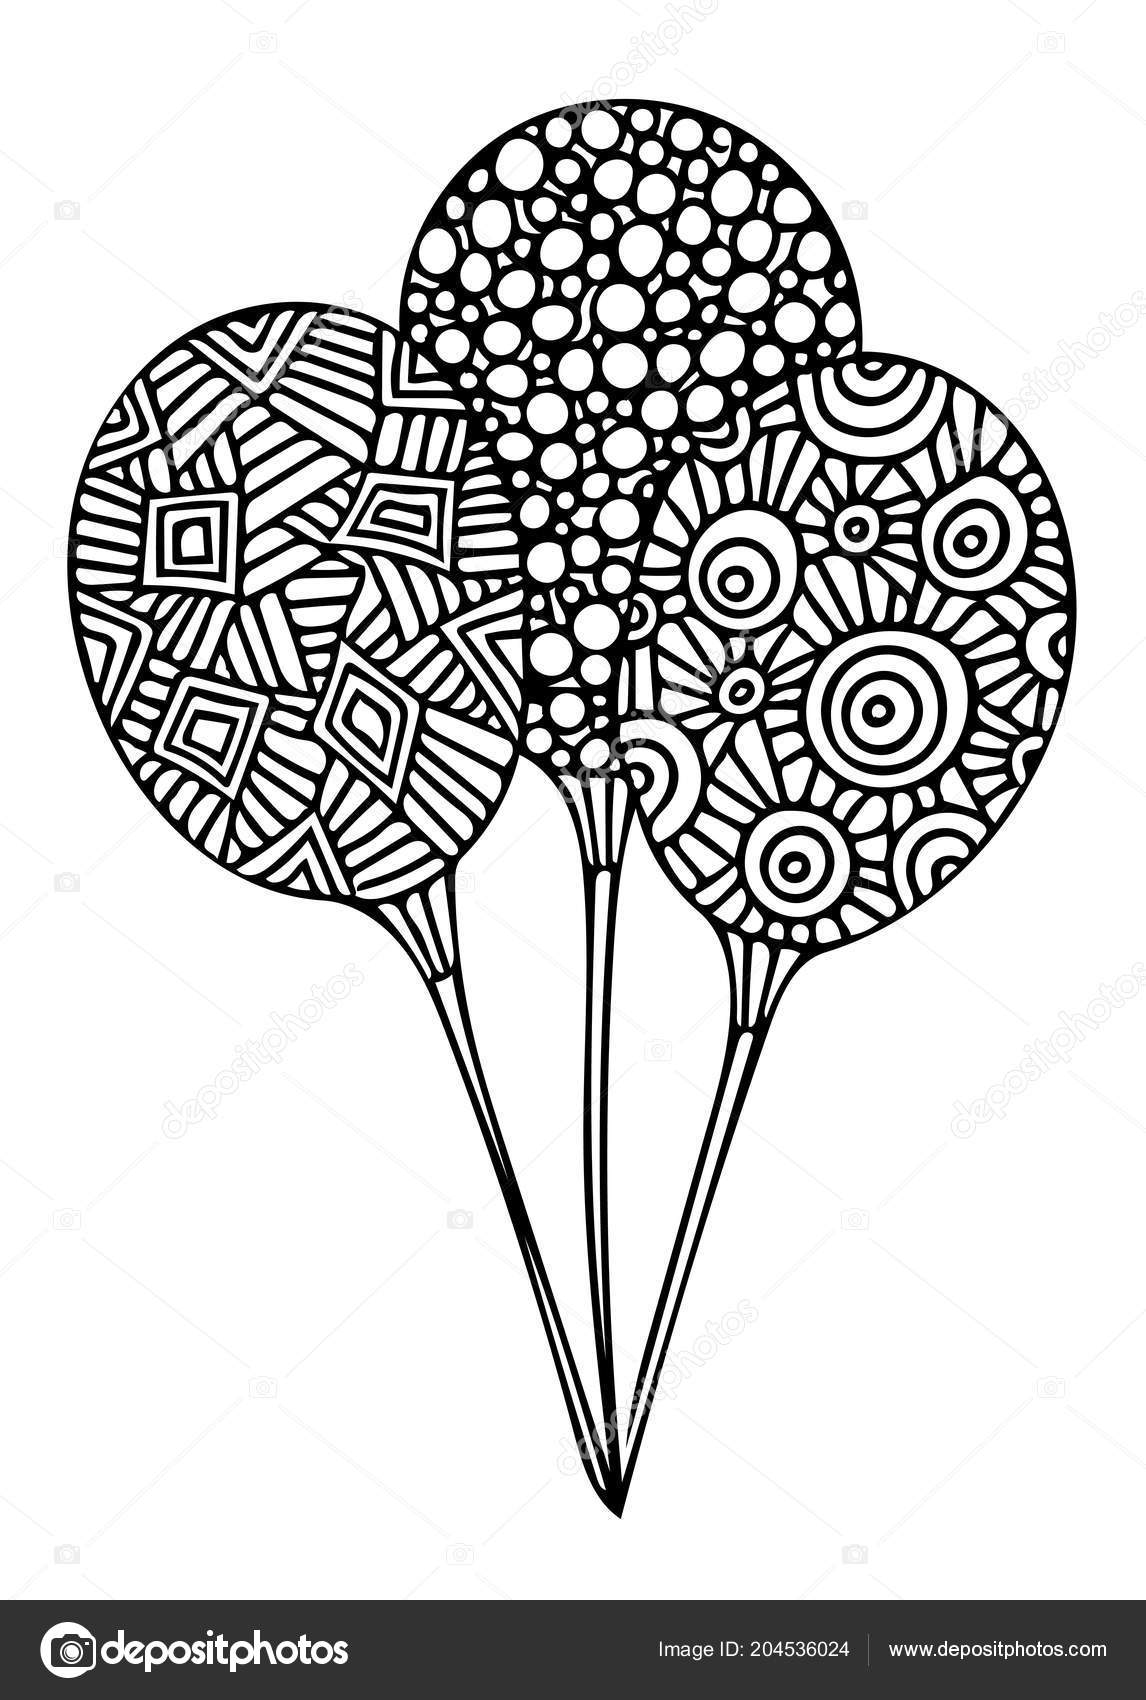 Black Line Balloon Coloring Book Page Concept Valentine Day